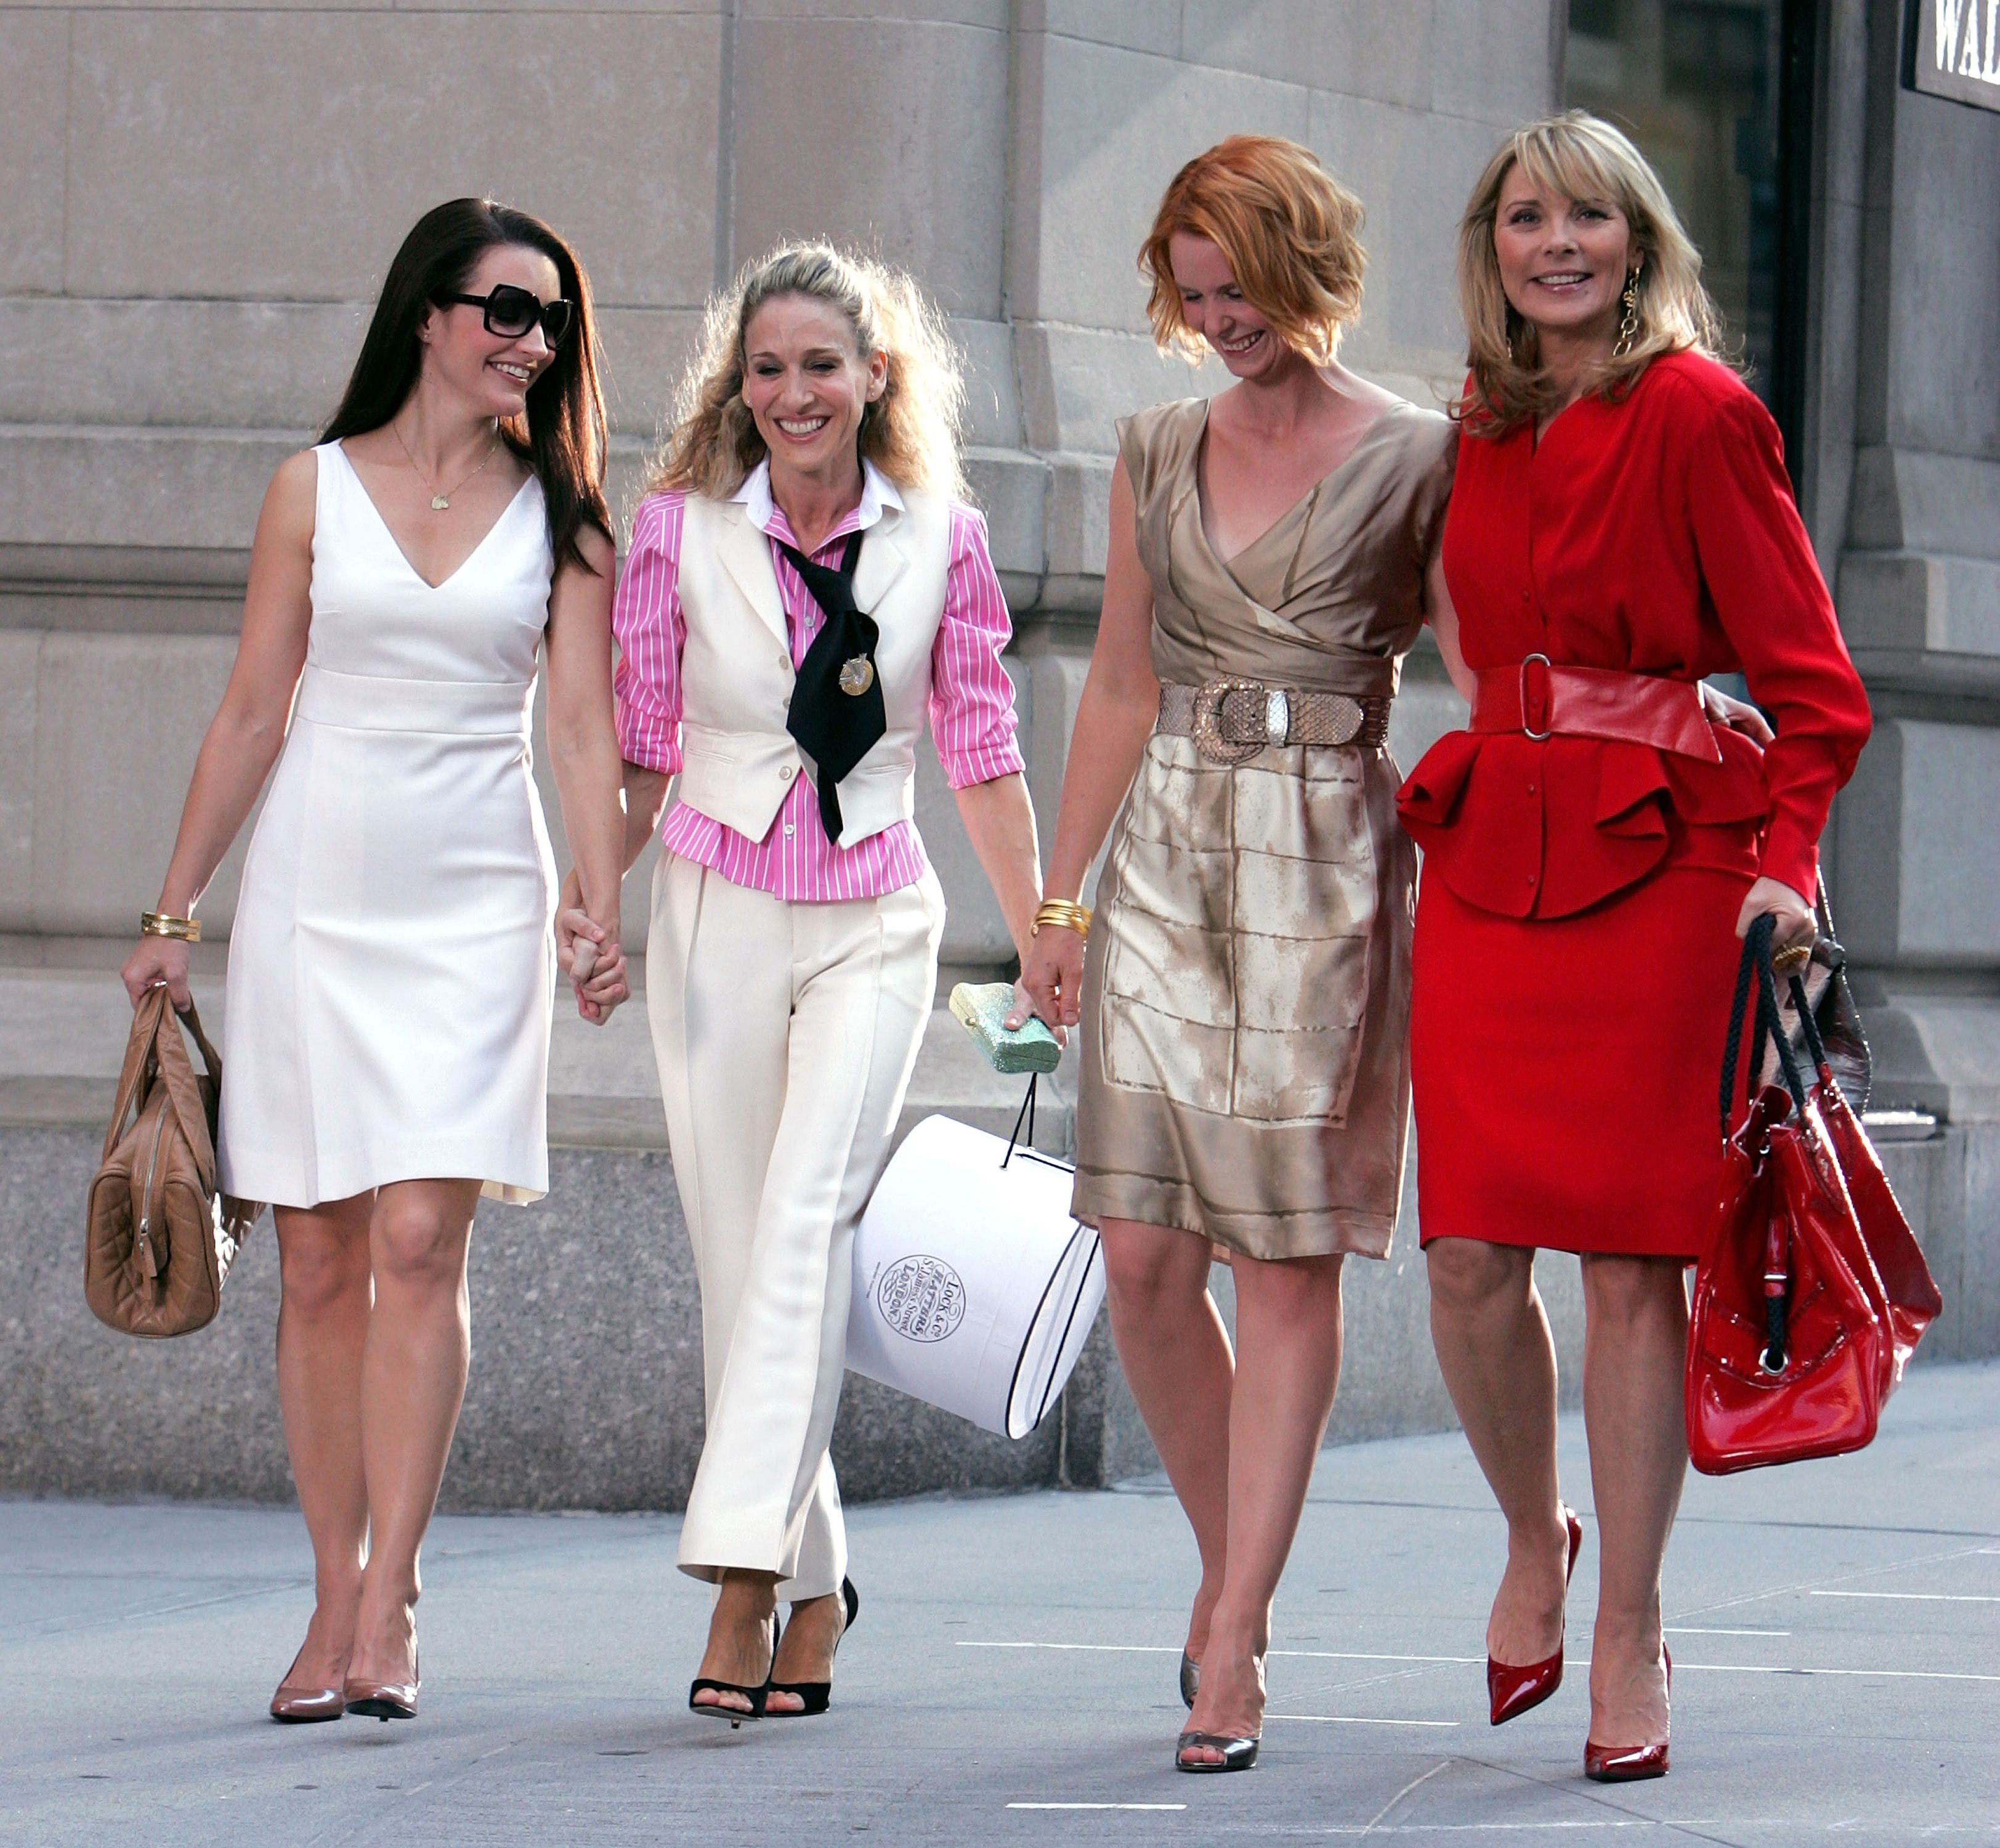 Cast of sex in the city movie